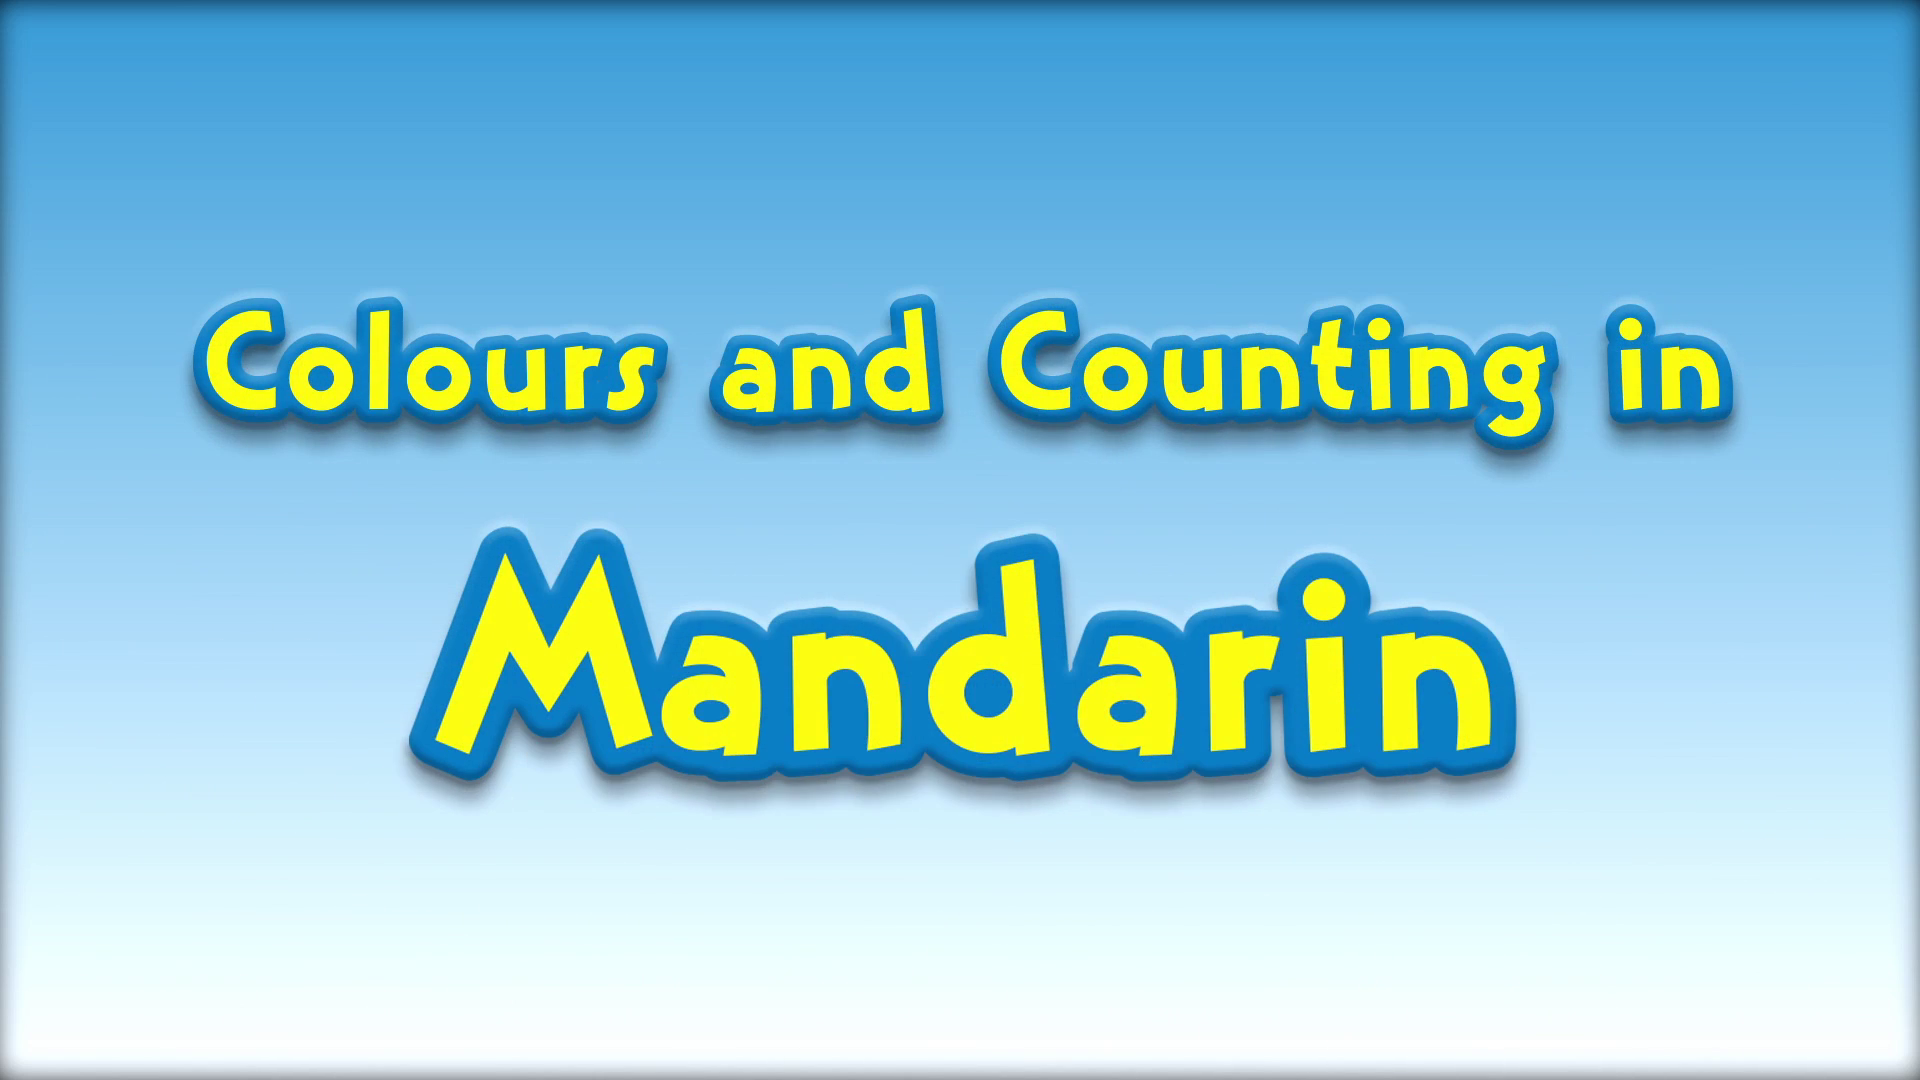 Colours and Counting in Mandarin